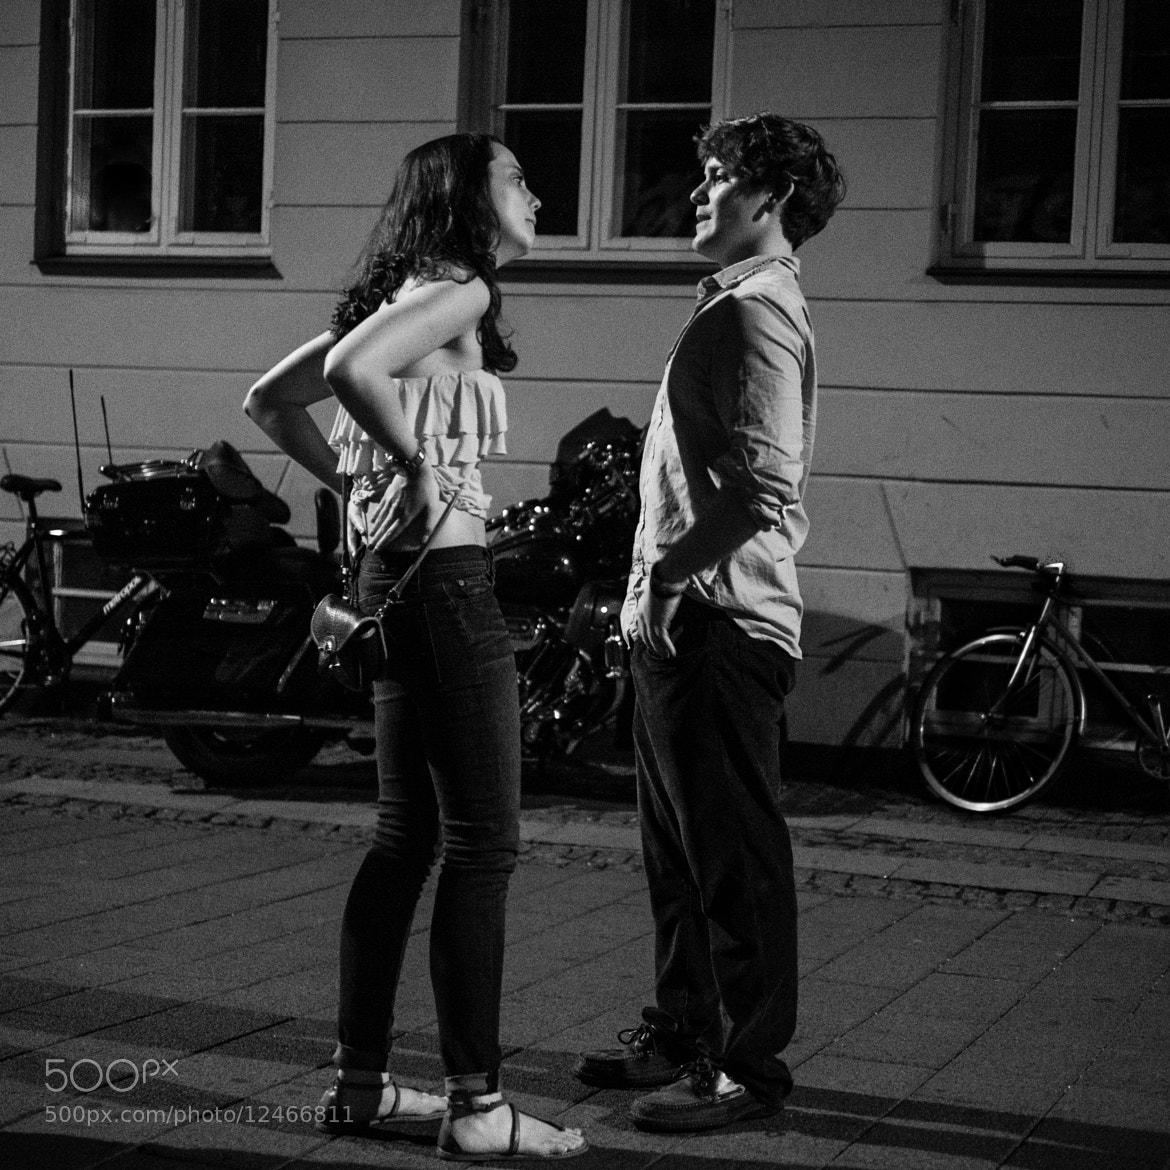 Photograph Body language - what's the story? by Claus Tom Christensen on 500px